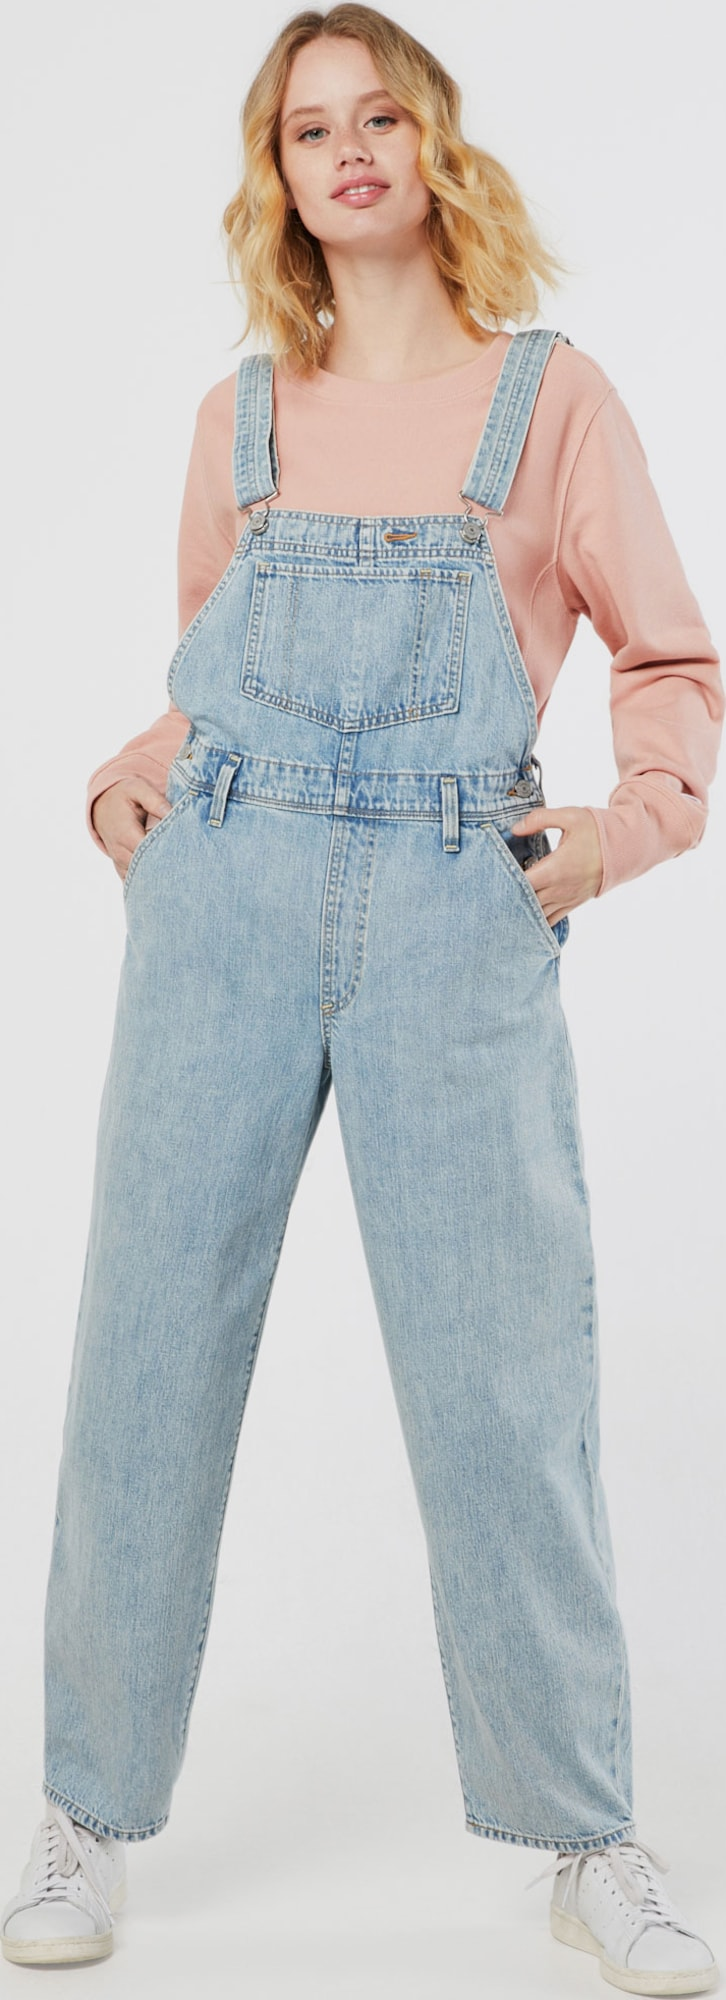 Citaten Weergeven Jeans : Levi s tuinbroek jeans baggy in blauw about you